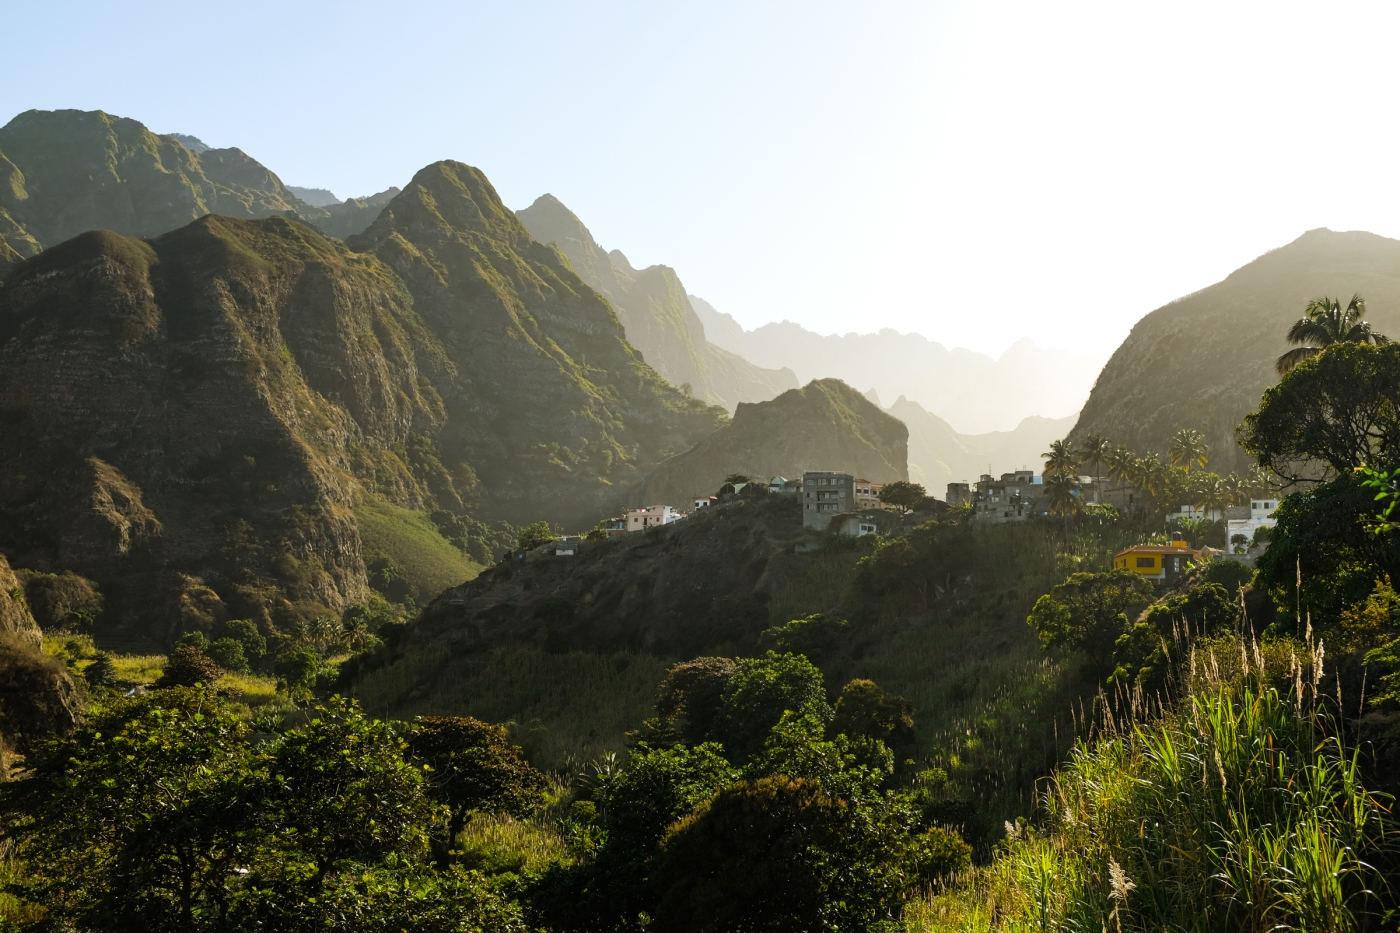 A village in a green mountain valley